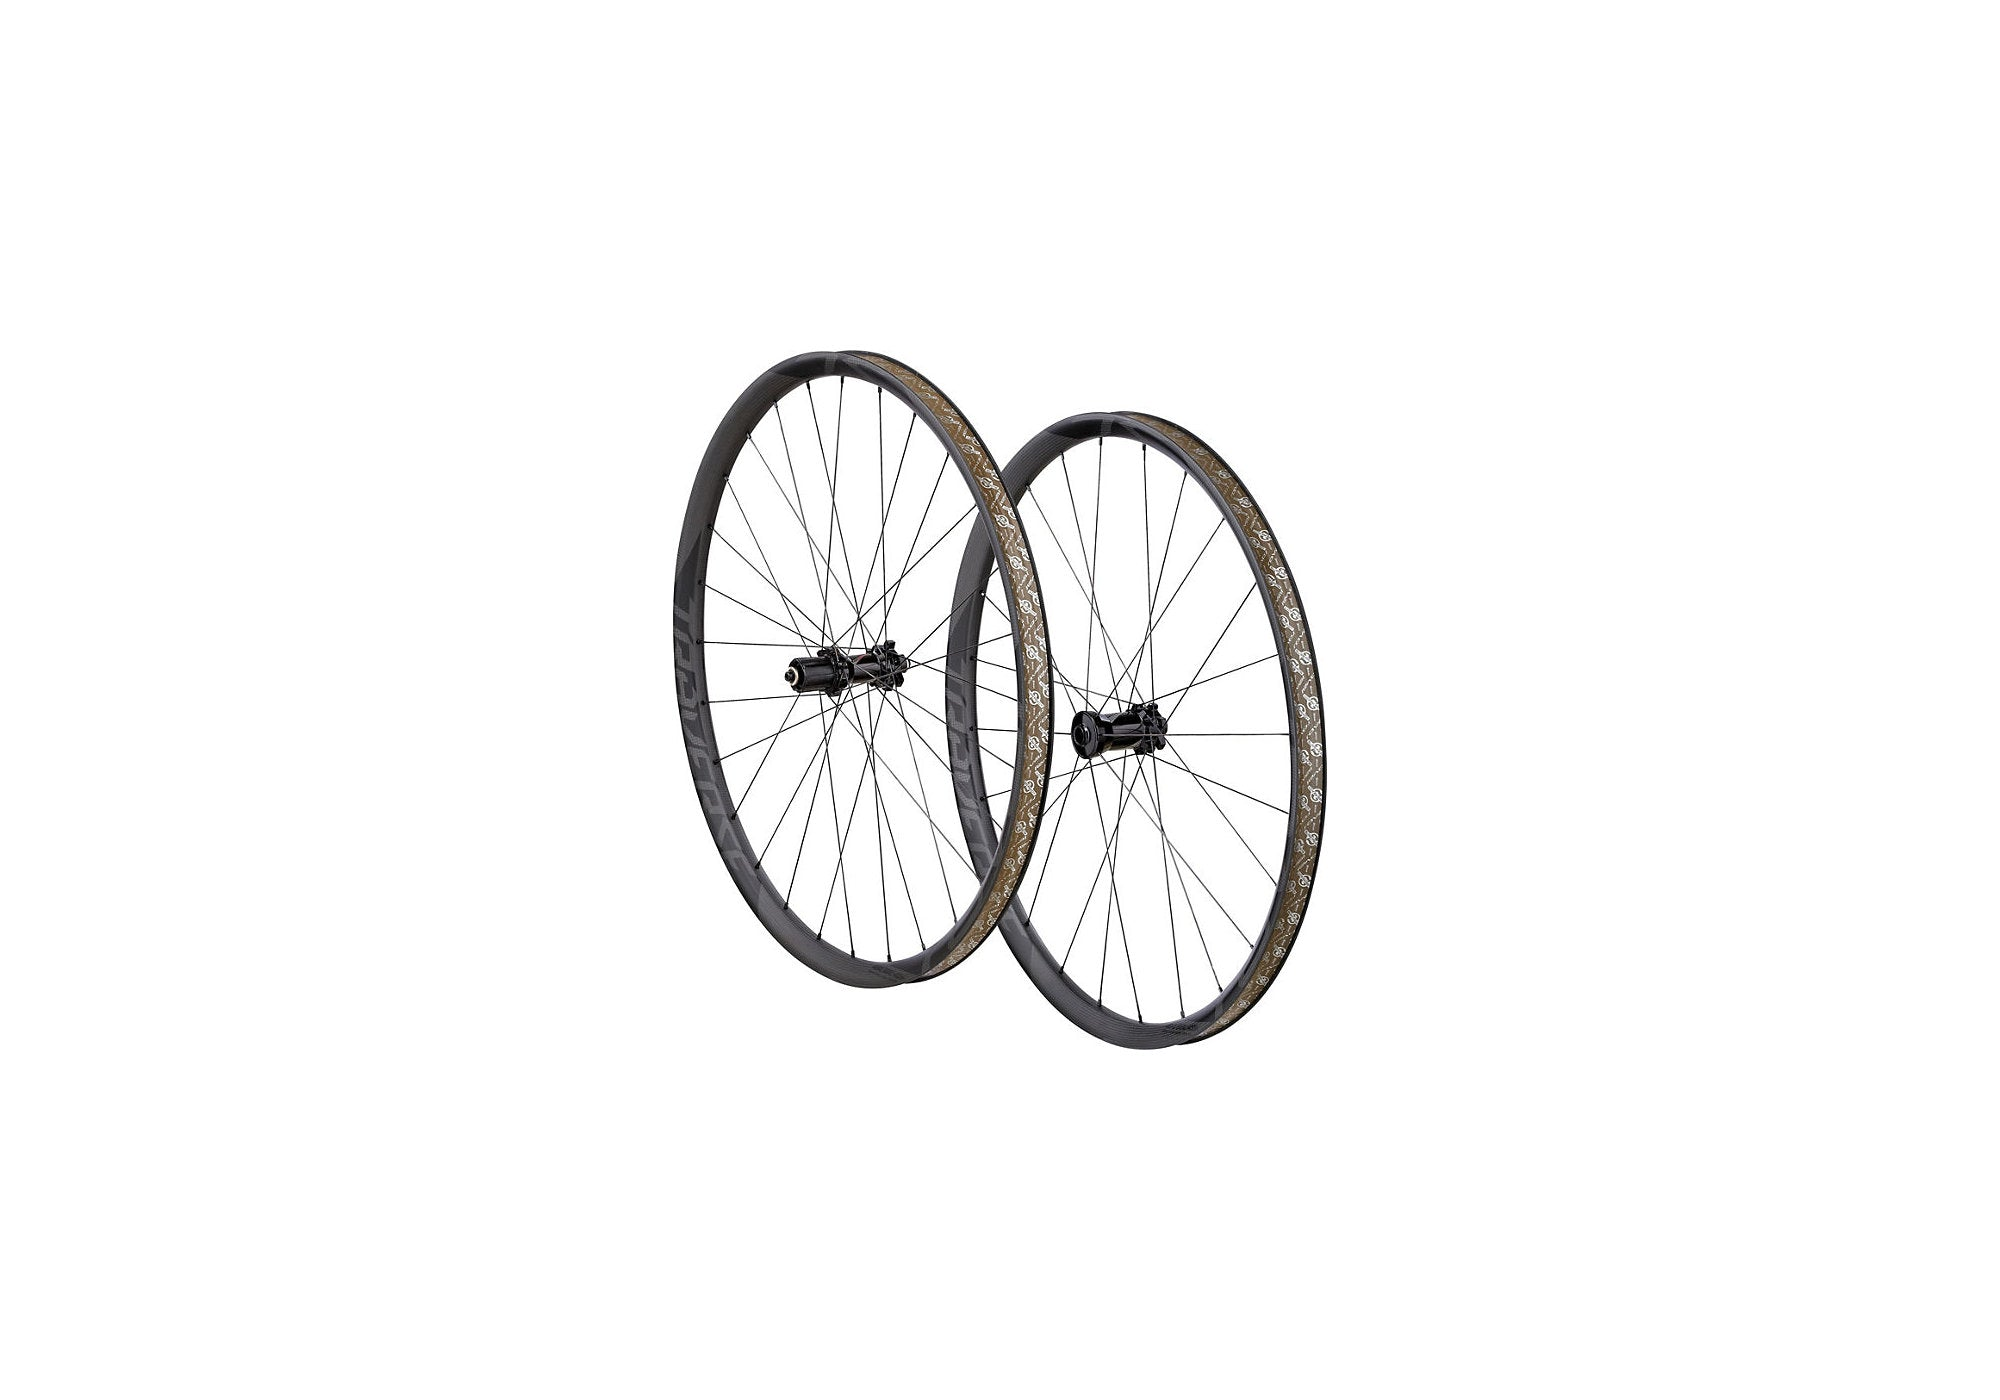 Specialized 2018 Traverse SL Carbon wheelset